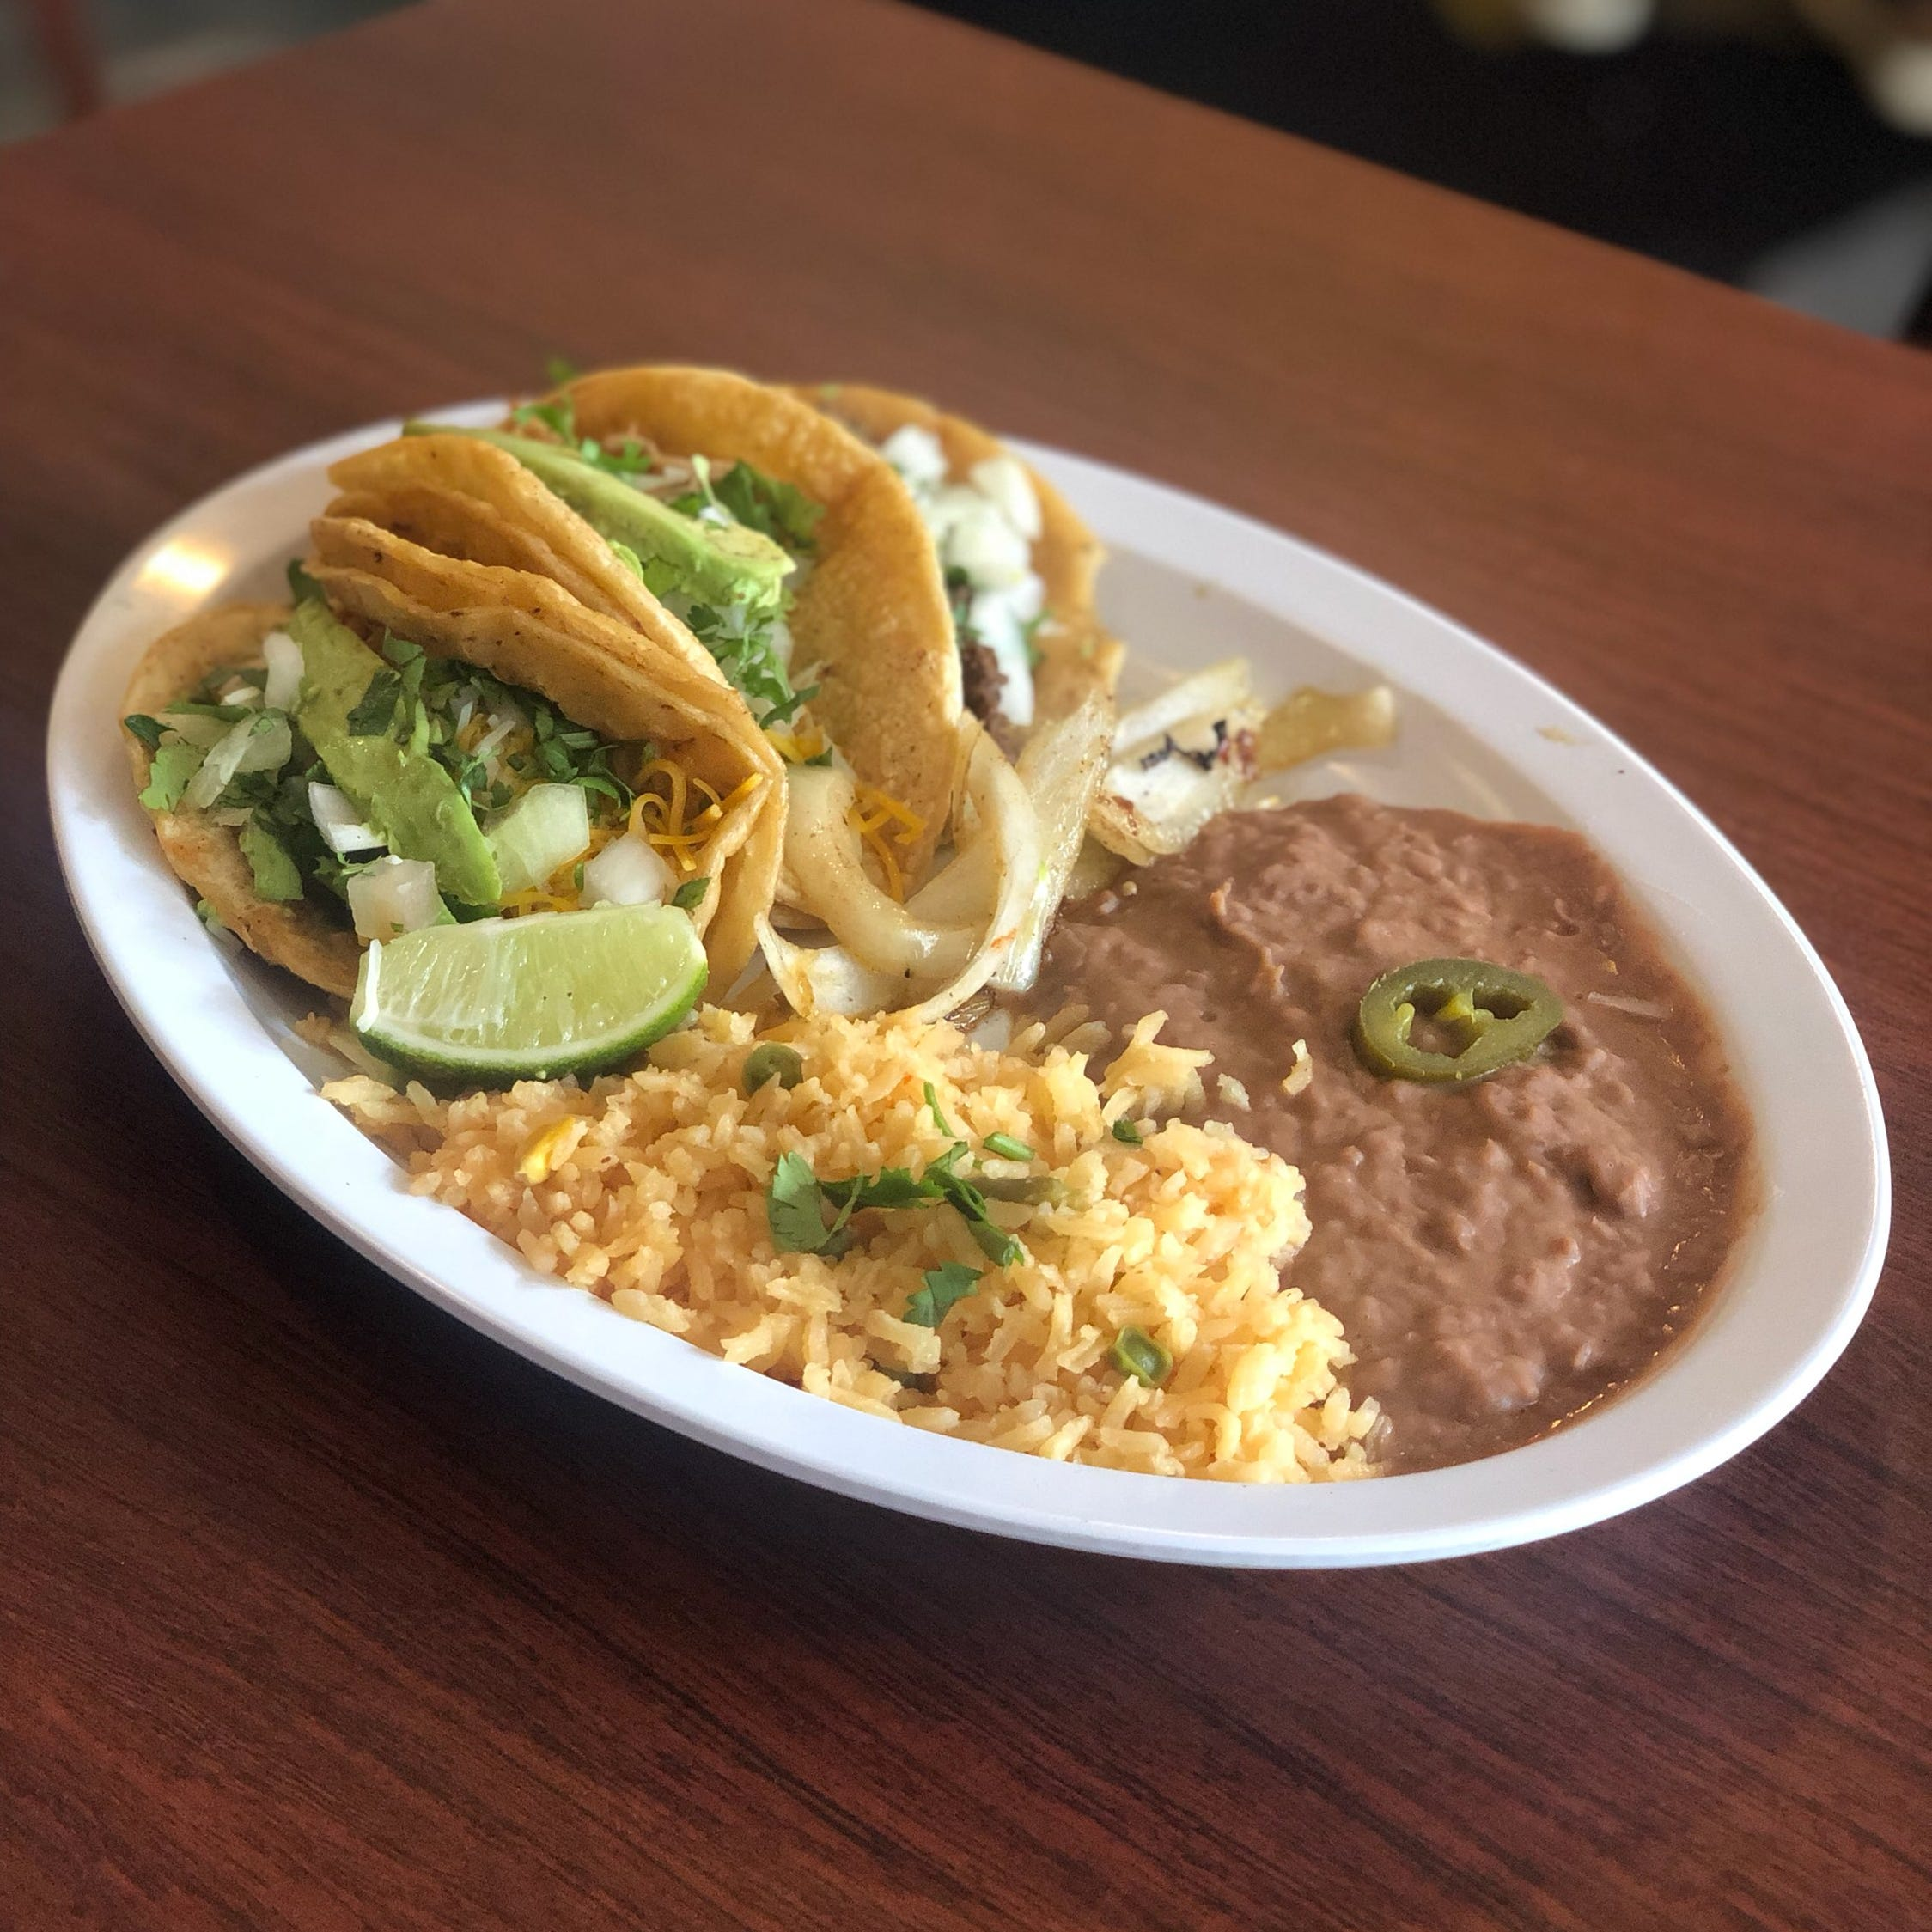 Jose's Tacos to open second location in Eastern Market